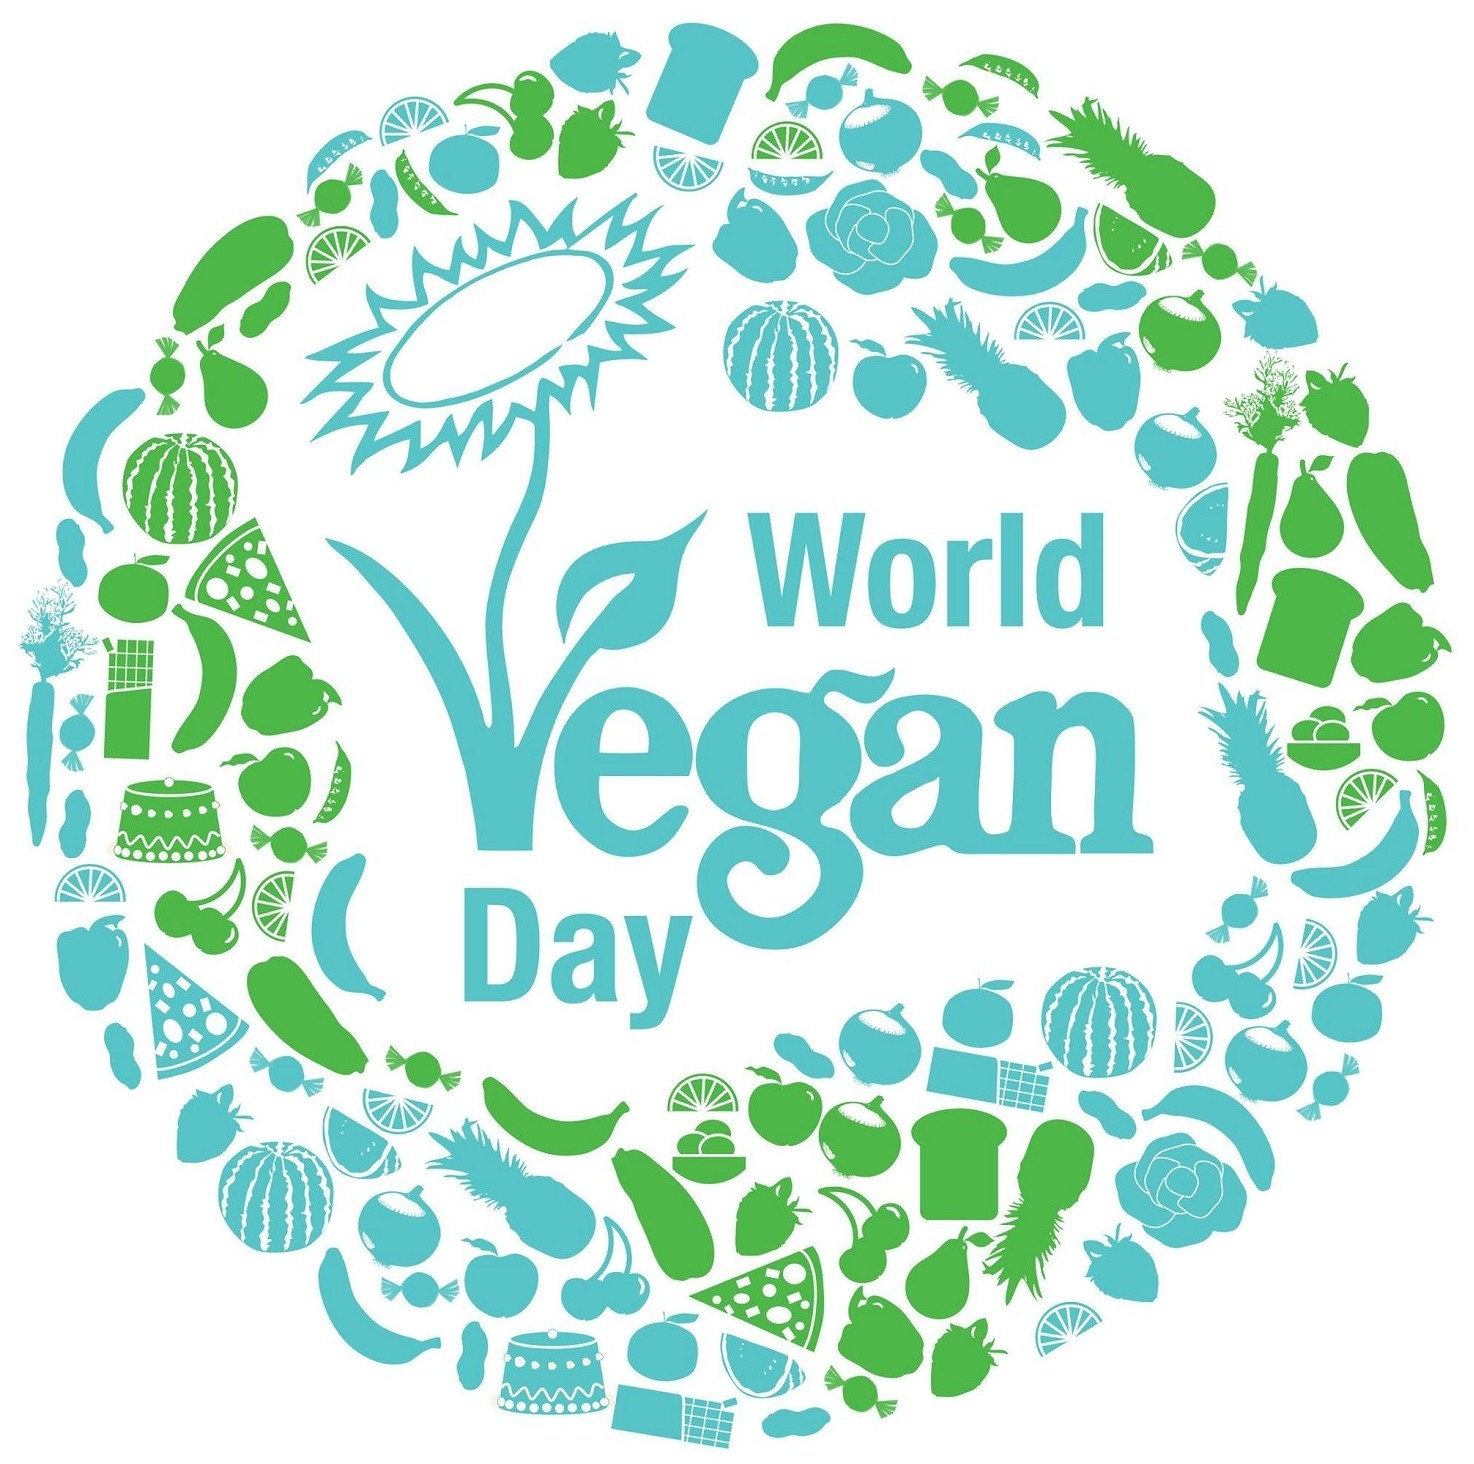 World Vegan Day e veganesimo: leggenda e